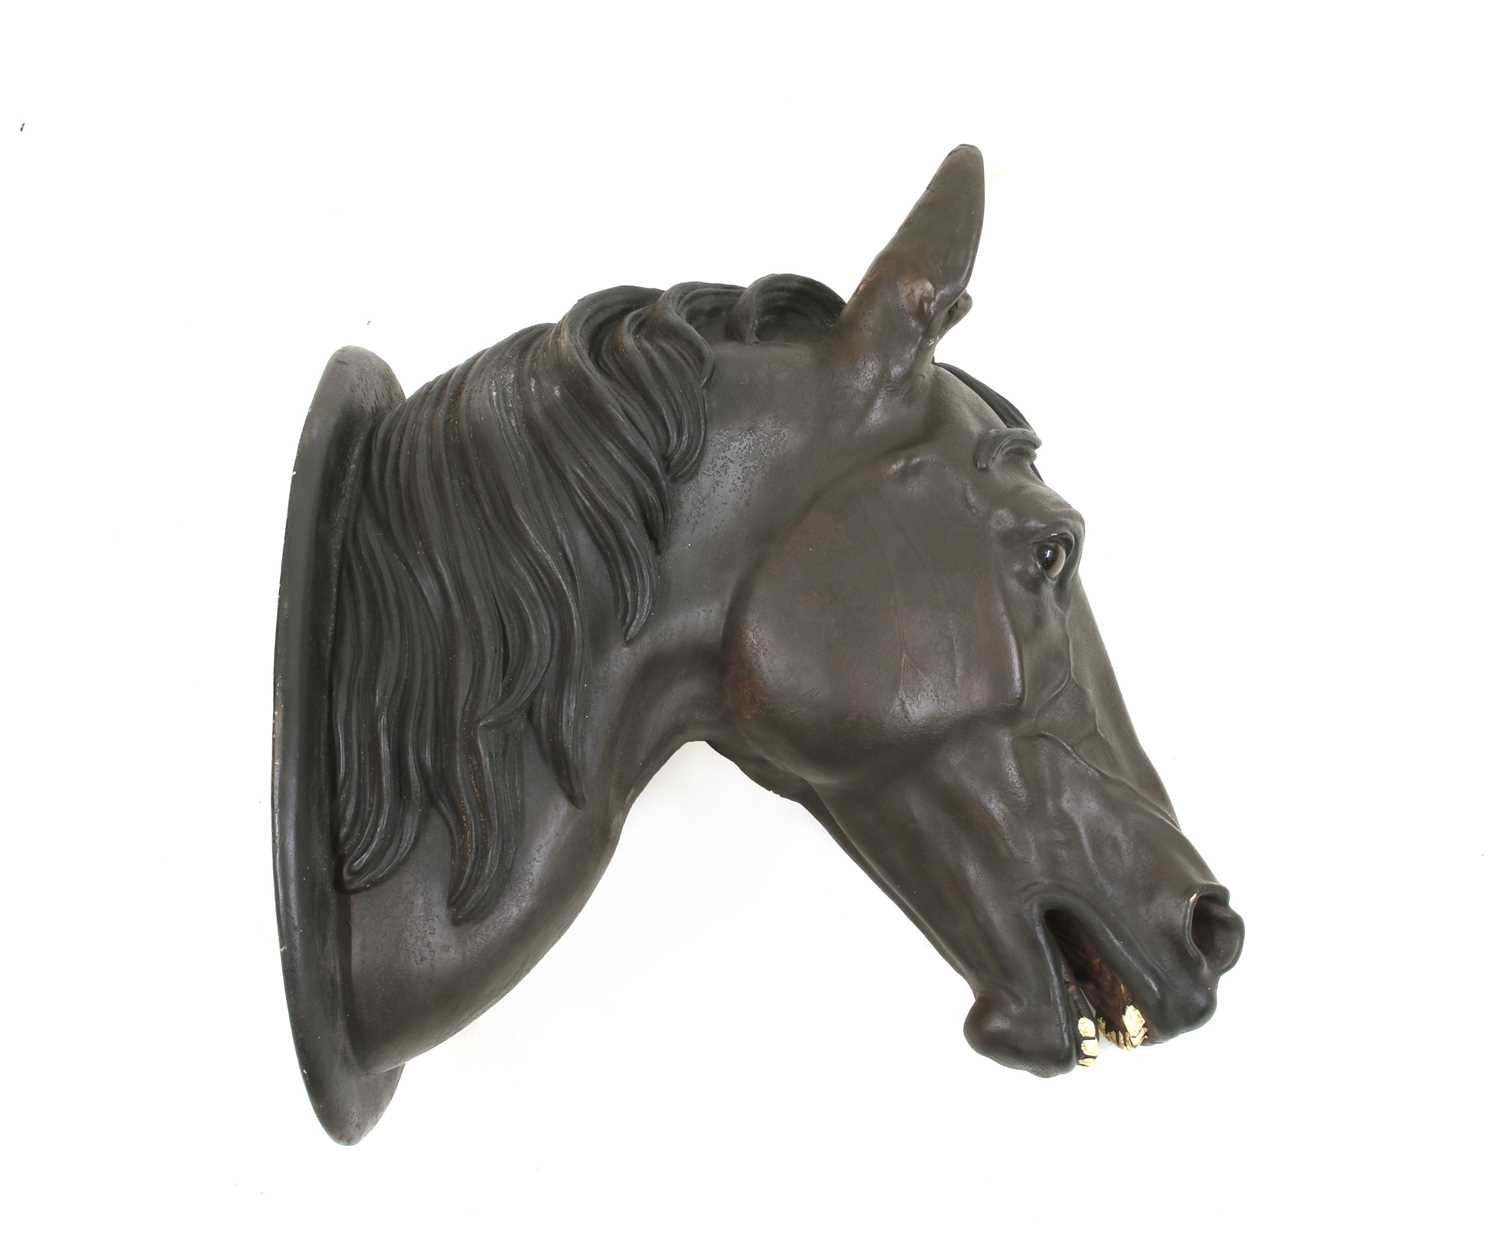 A terracotta horse's head trade sign, - Image 2 of 2